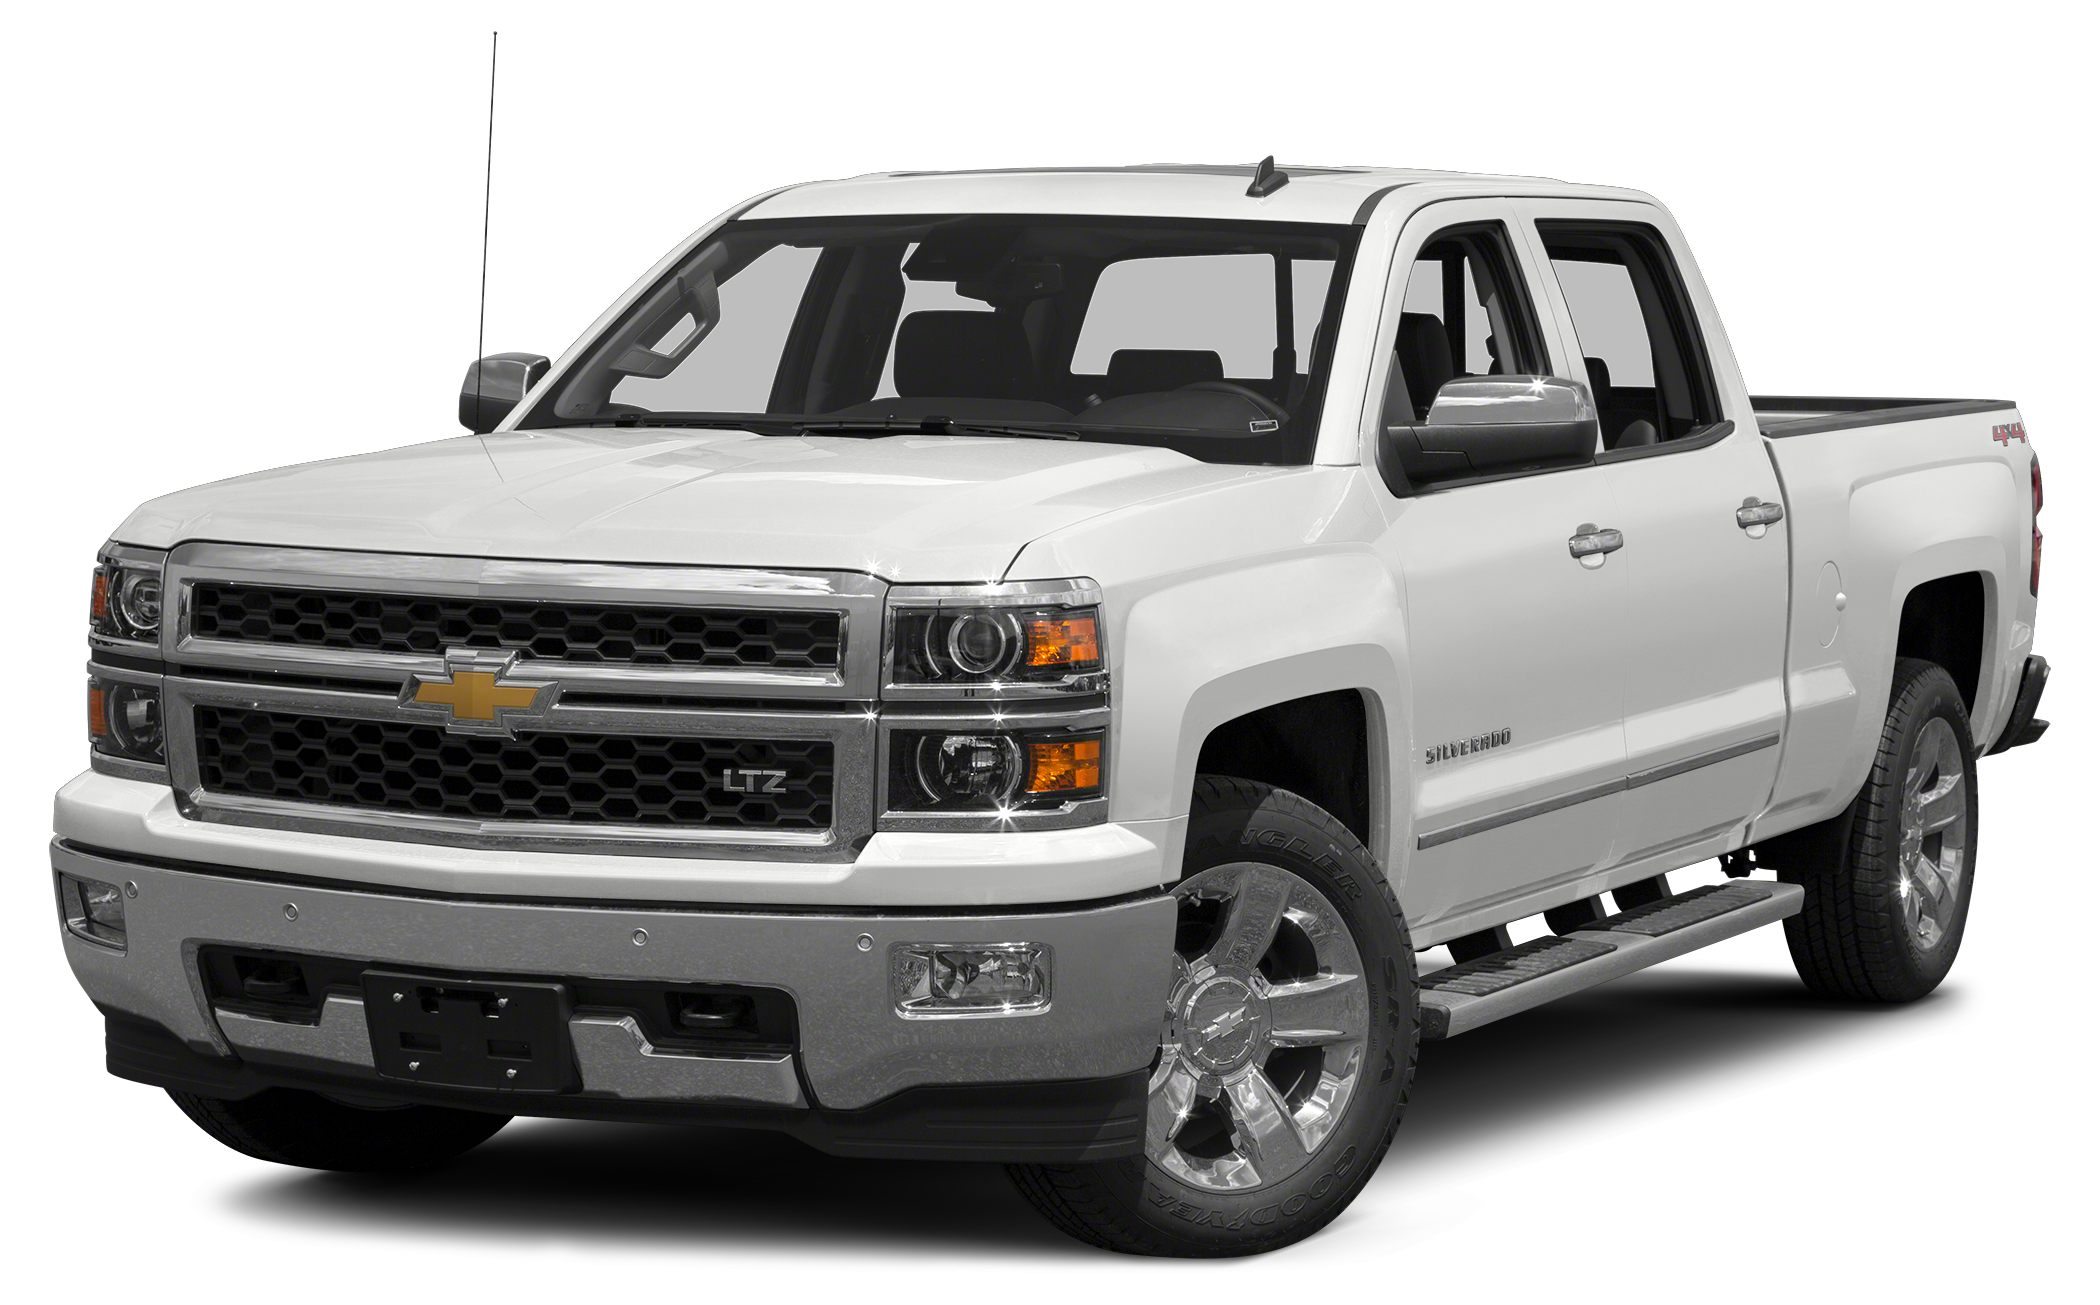 2014 Chevrolet Silverado 1500 LT Youll love the look and feel of this 2014 Chevrolet Silverado 15